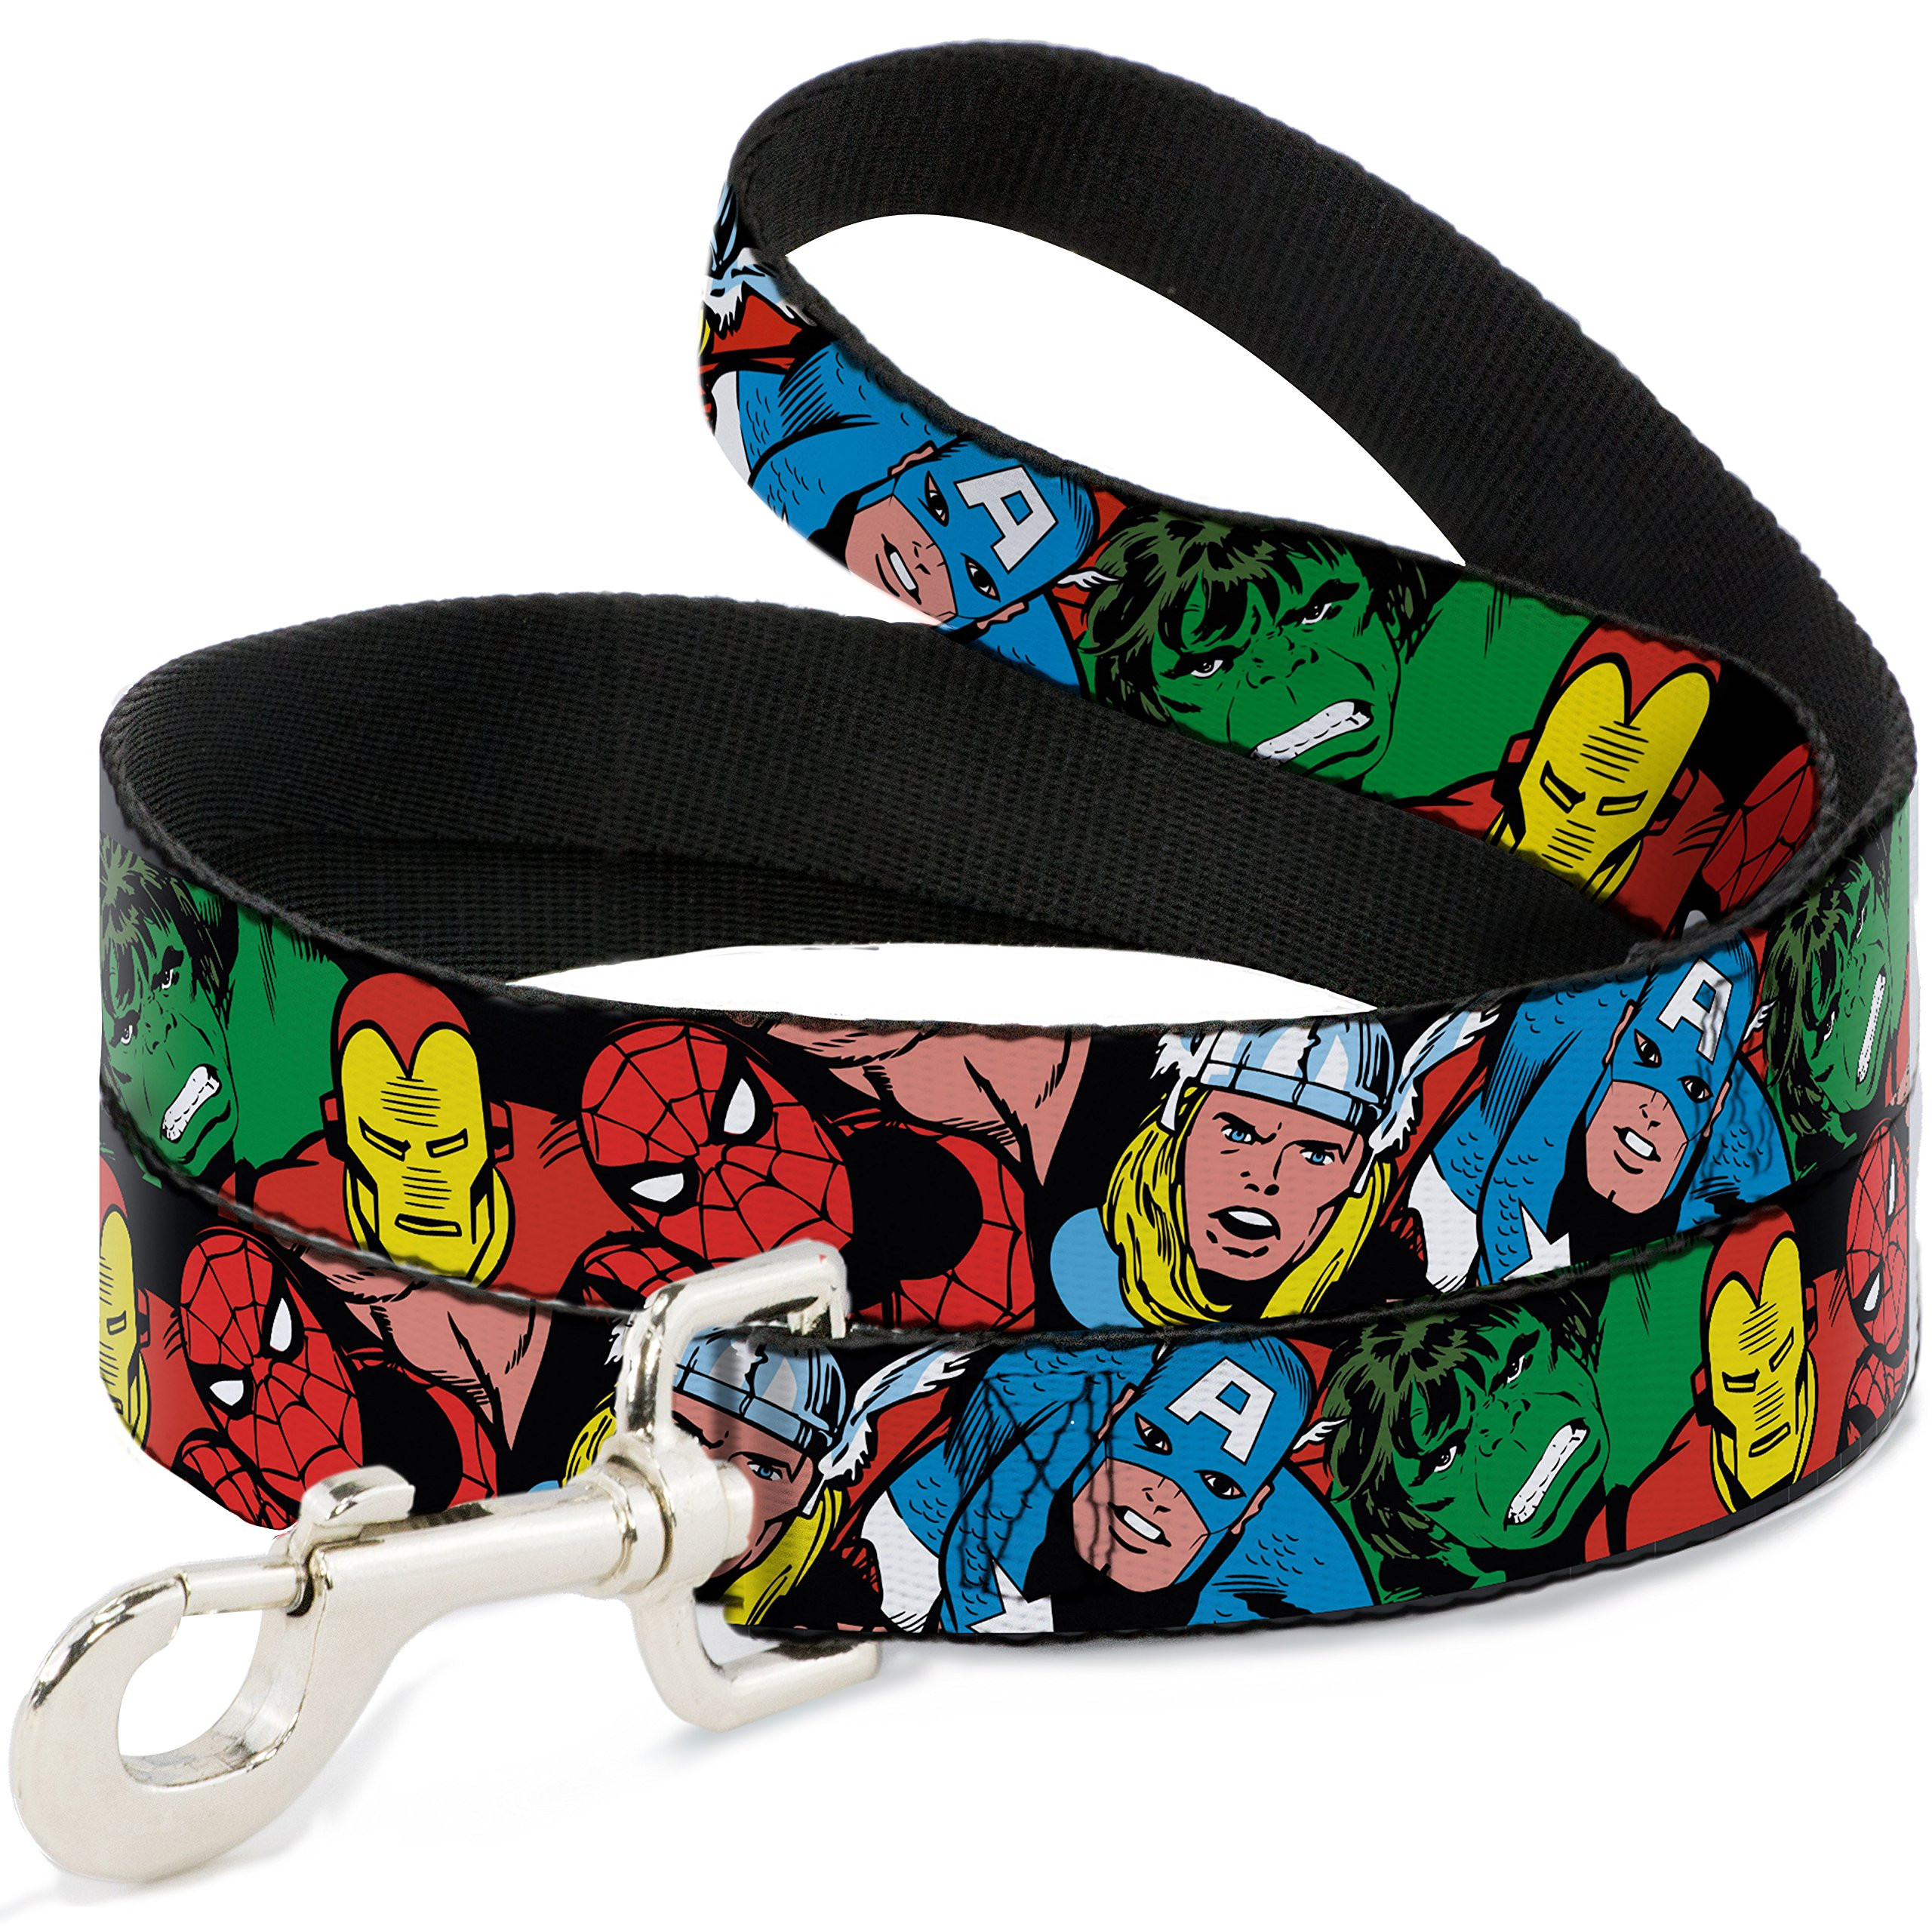 Buckle-Down Dog Leash 5 Marvel Characters Black Available in Different Lengths and Widths for Small Medium Large Dogs and Cats